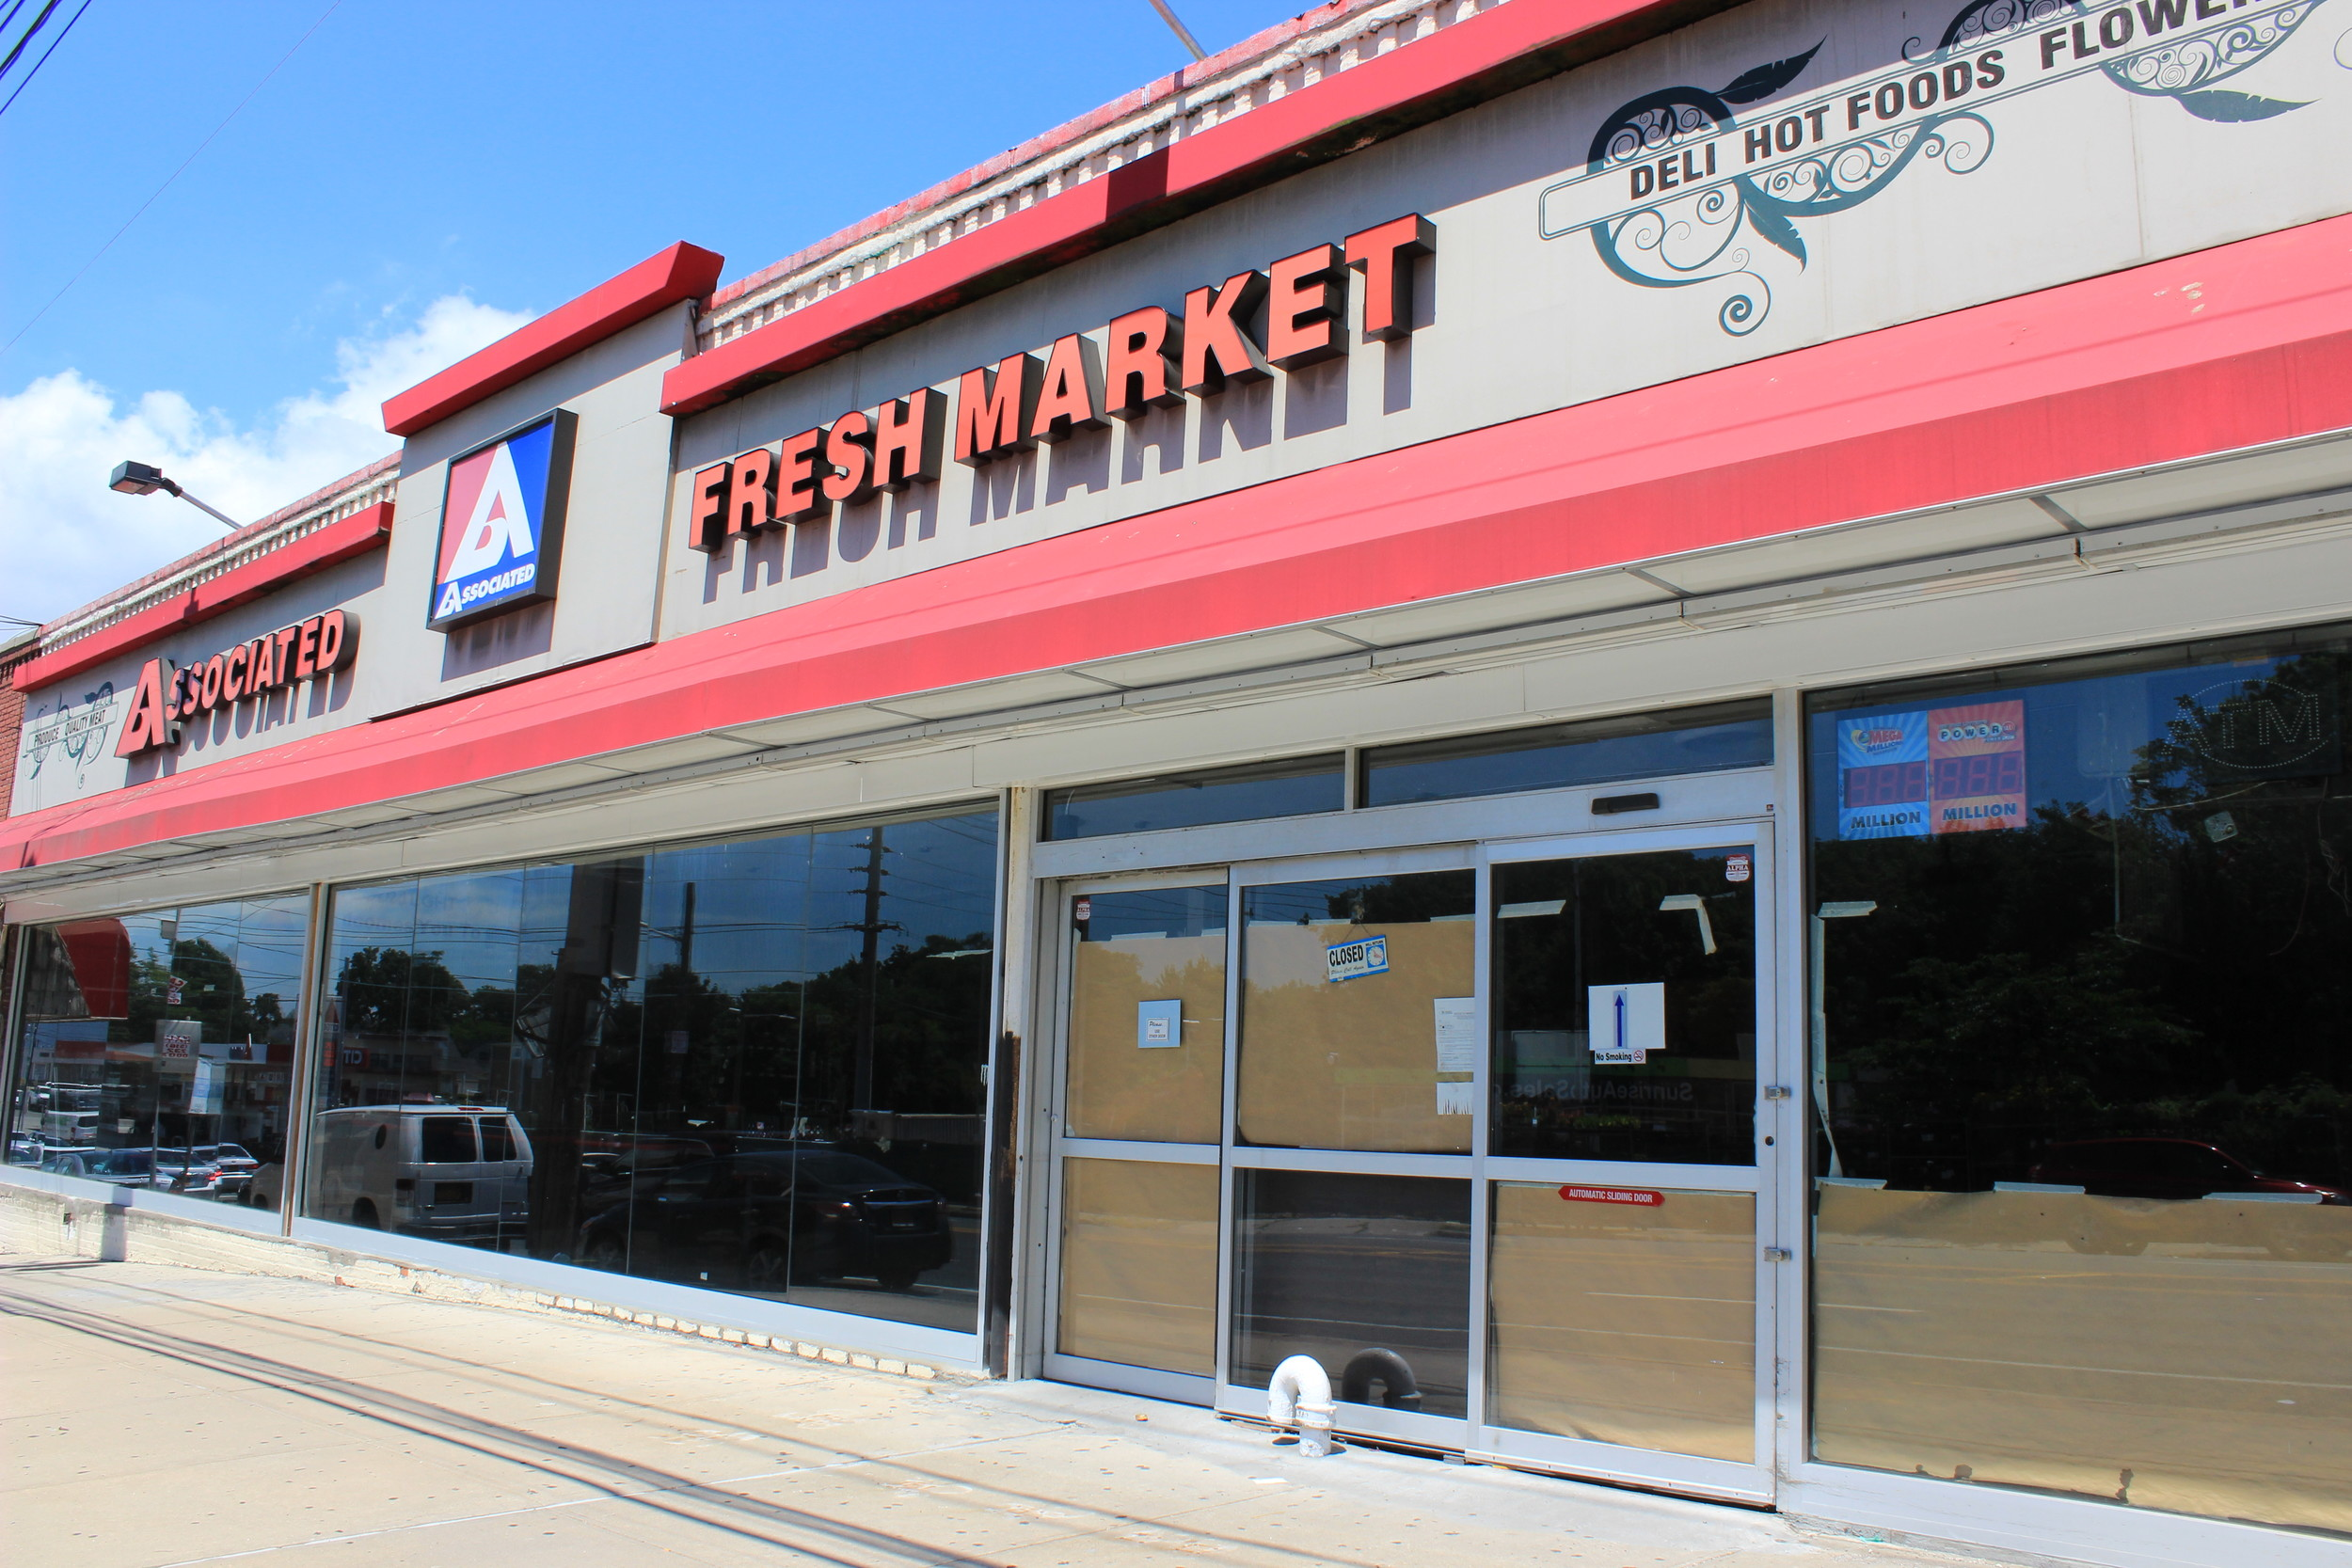 This property, formerly an Associated supermarket, stood vacant despite rumors that a new business would be moving in. As of press time, 24111 Linden Blvd. was still empty.